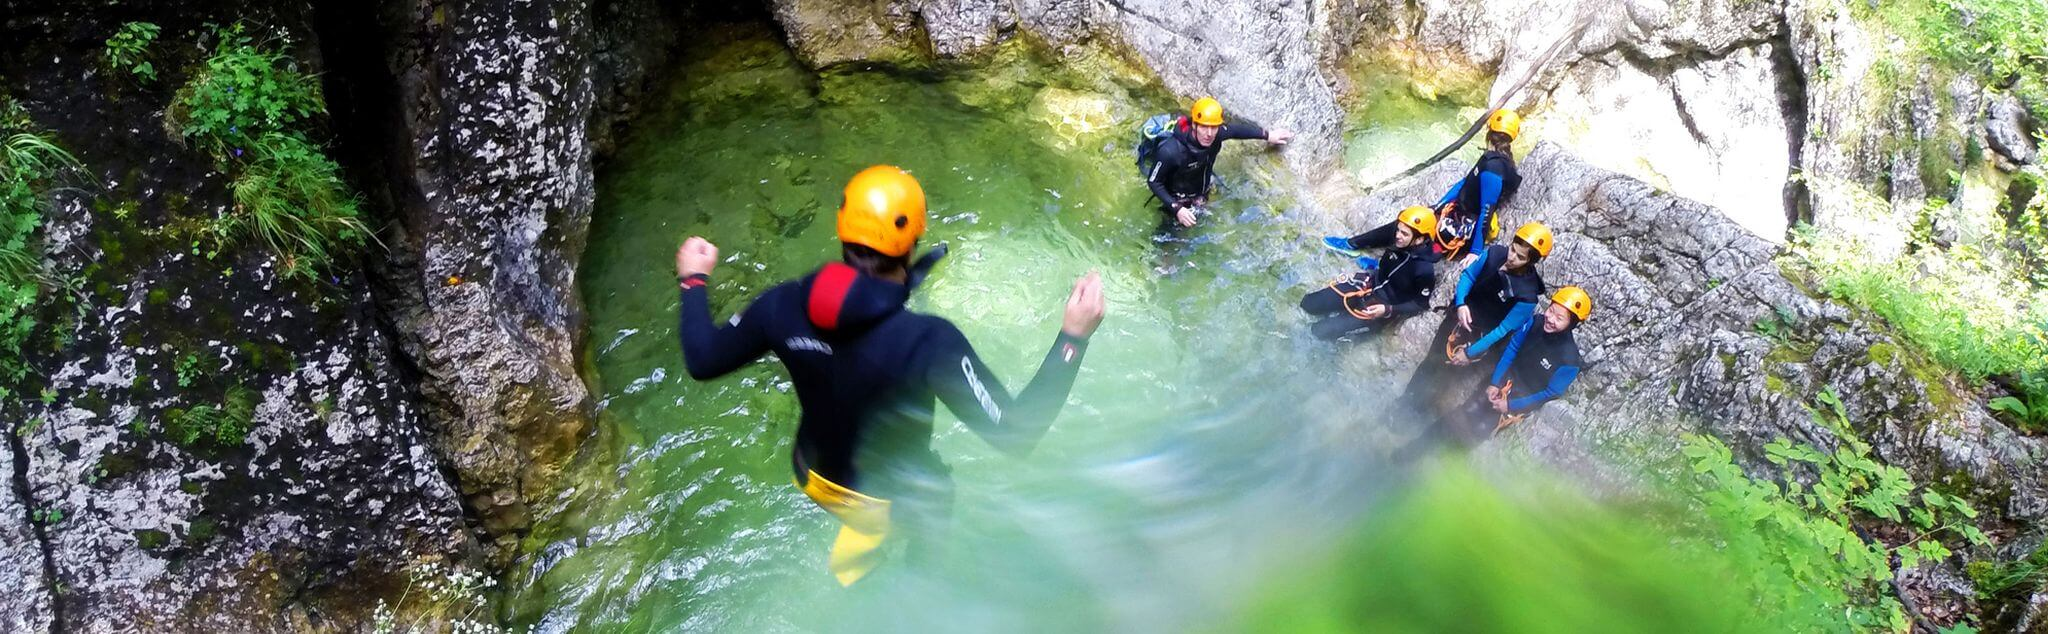 Canyoning in South Ayrshire